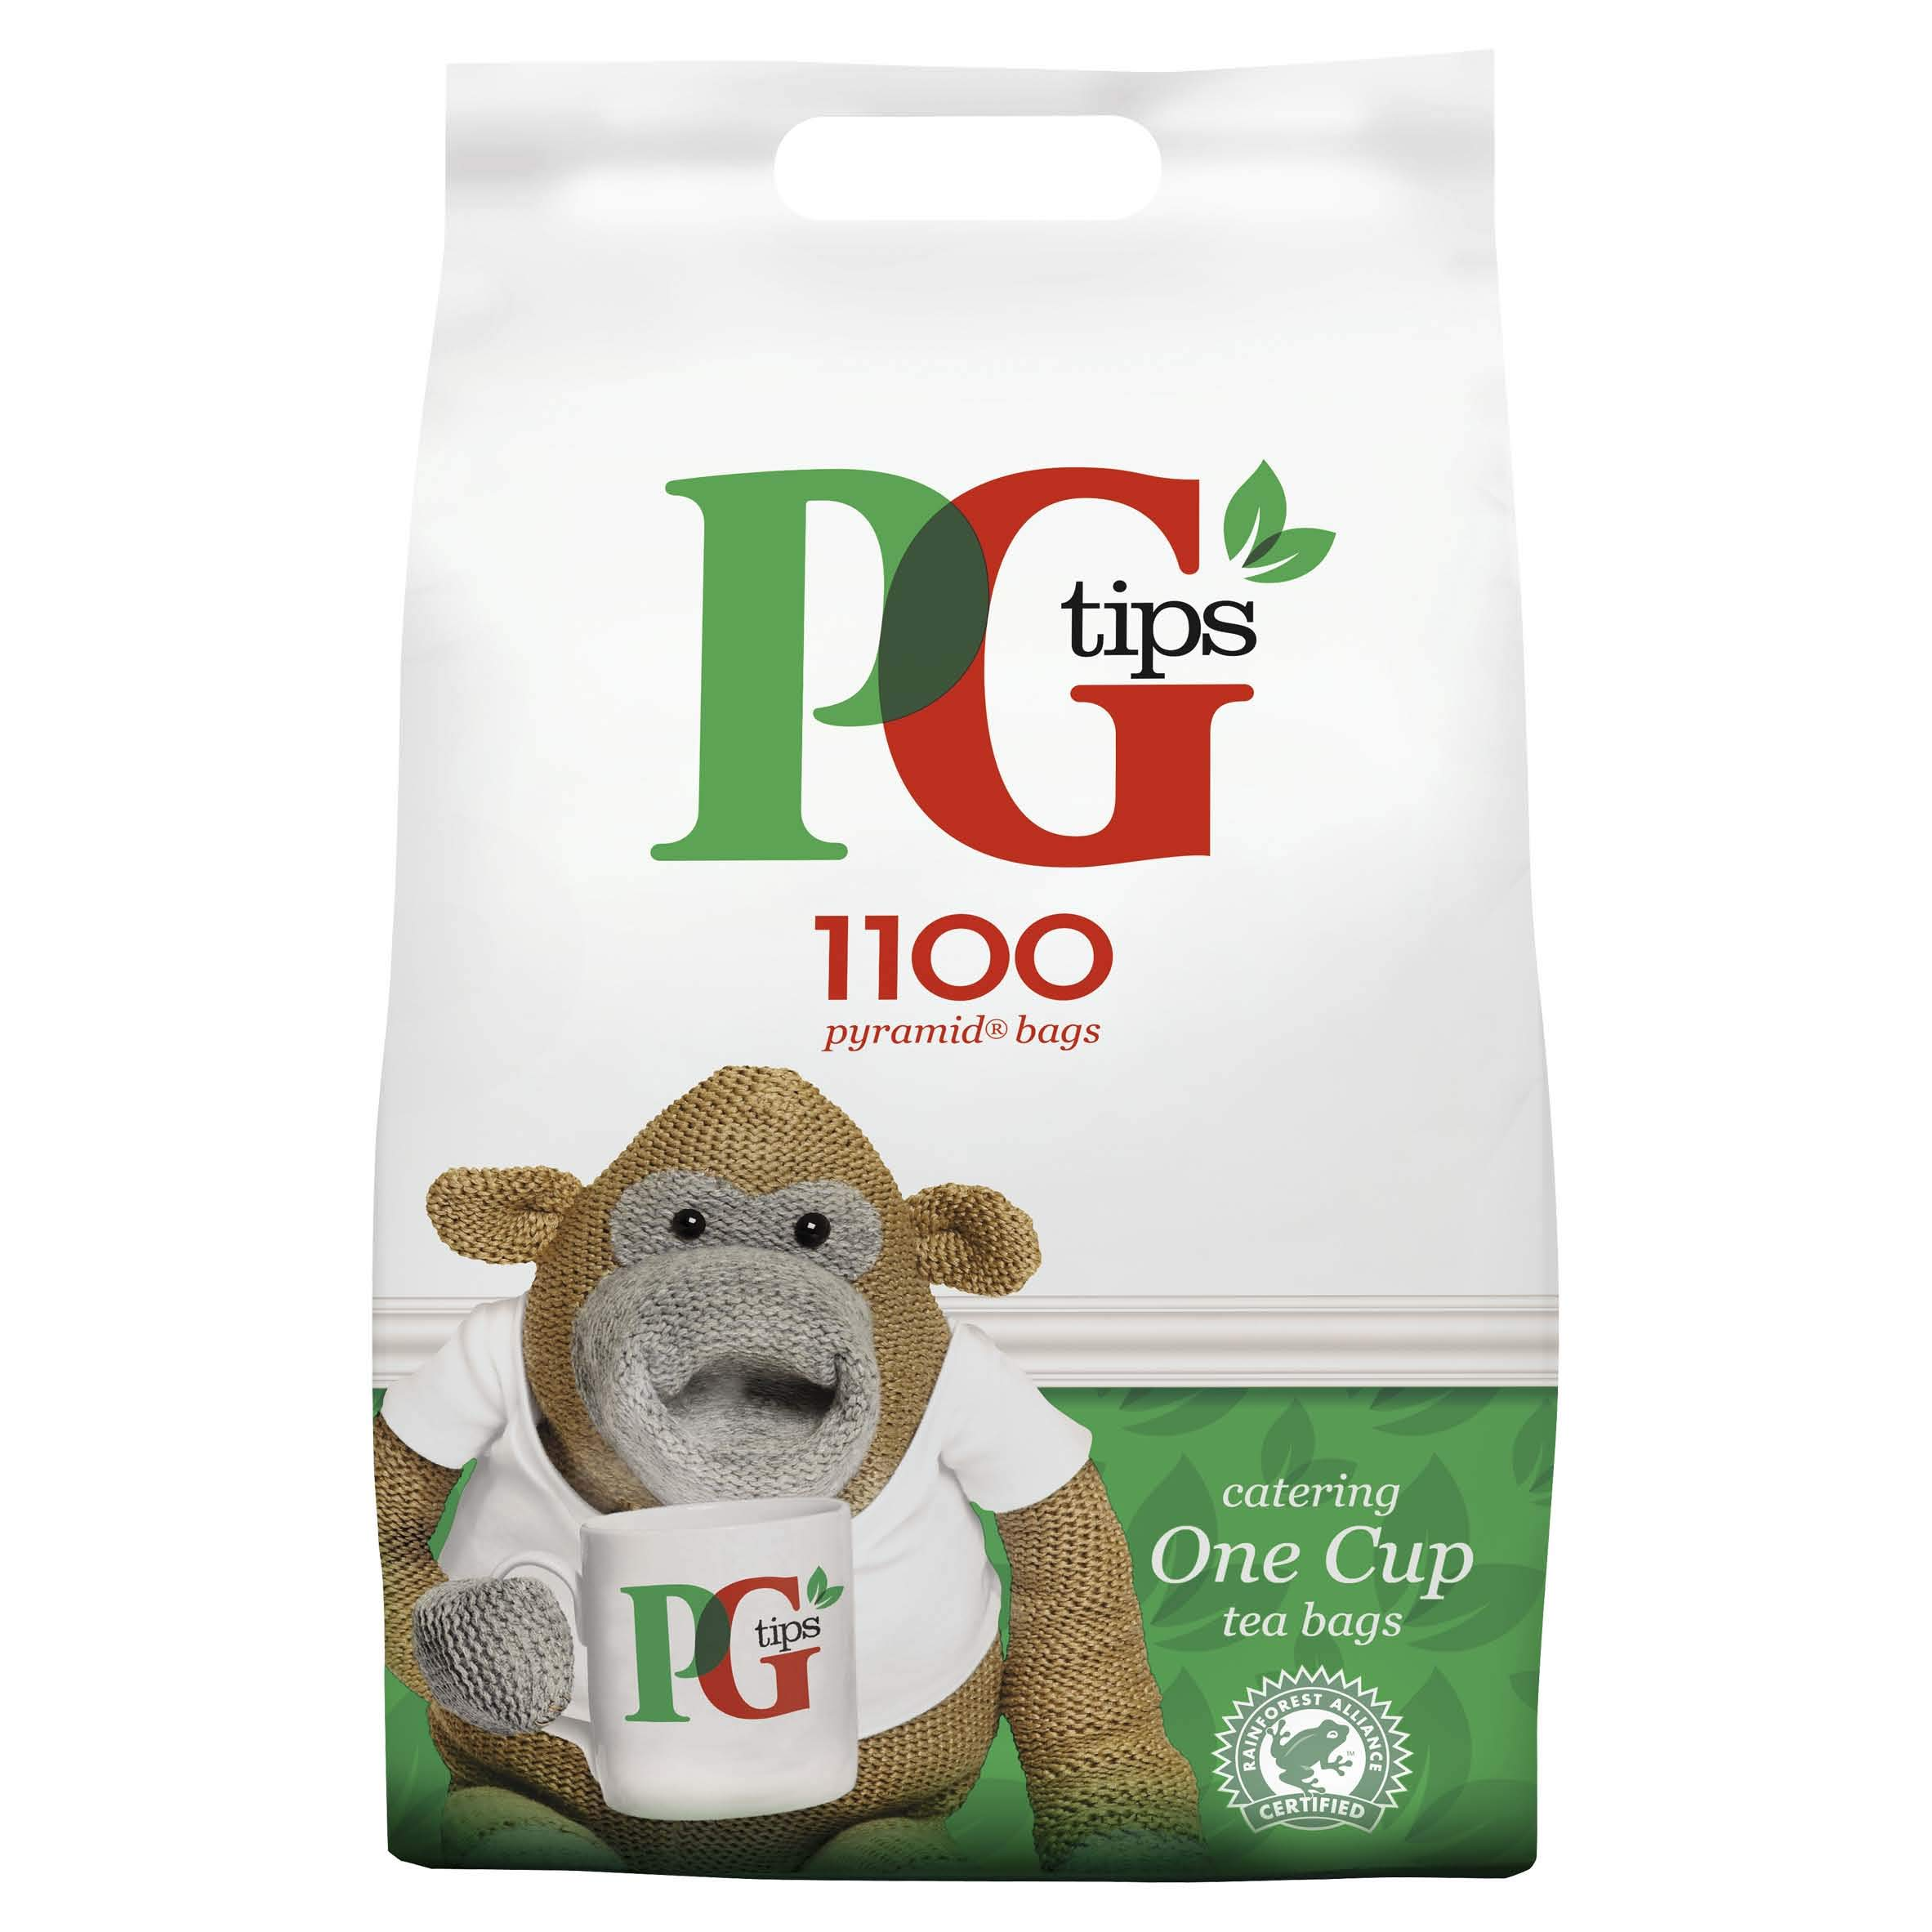 PG Tips One Cup Pyramid Tea Bags (Pack of 1, Total 1100 Tea Bags) by PG Tips (Image #2)